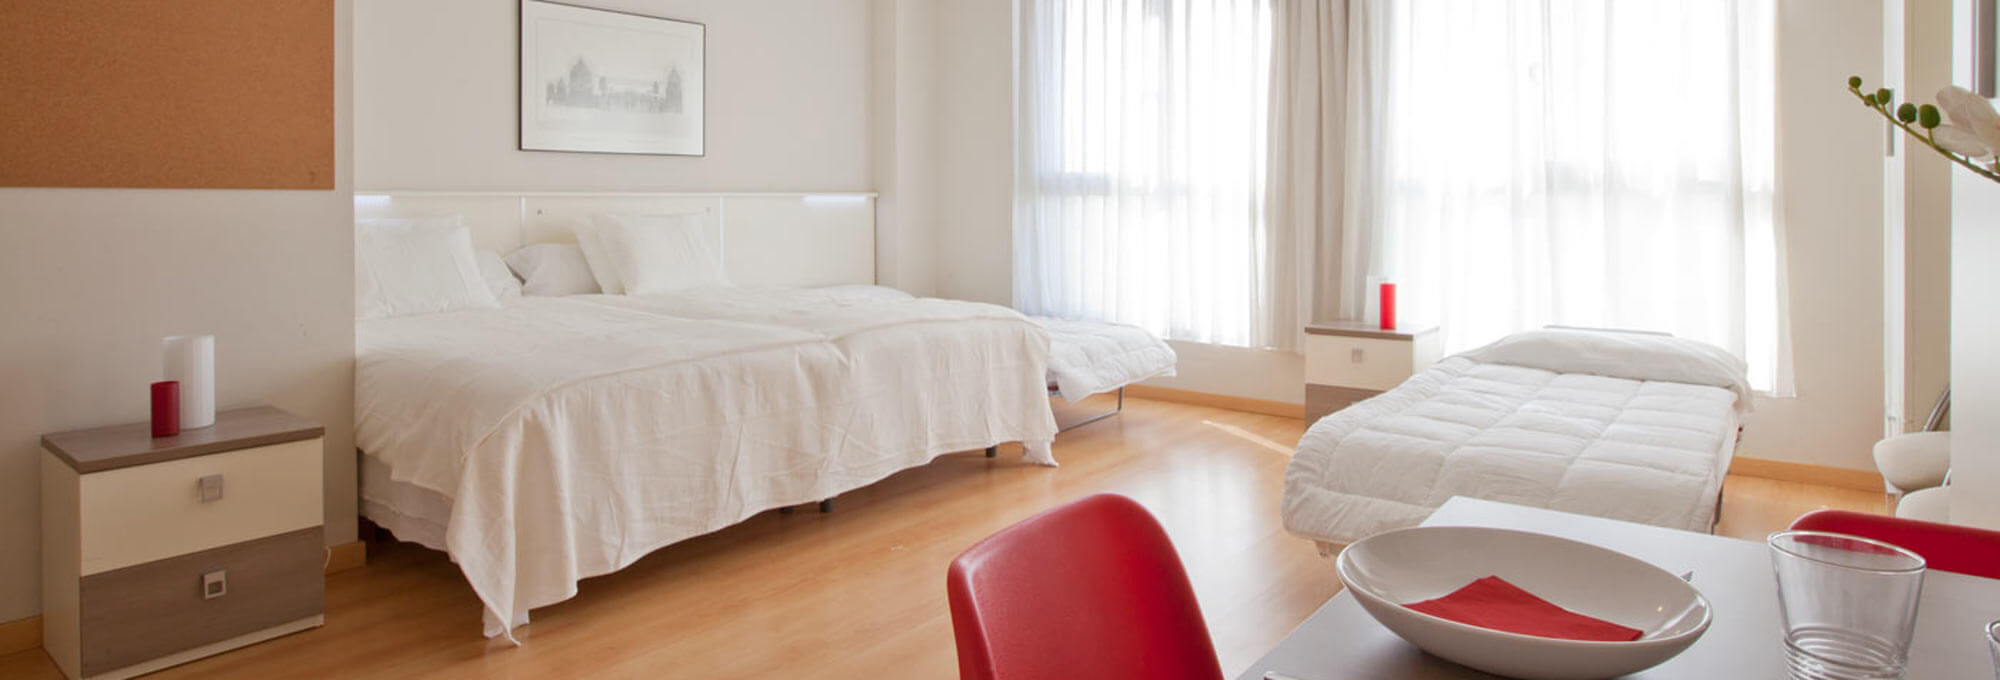 Roomspace Madrid